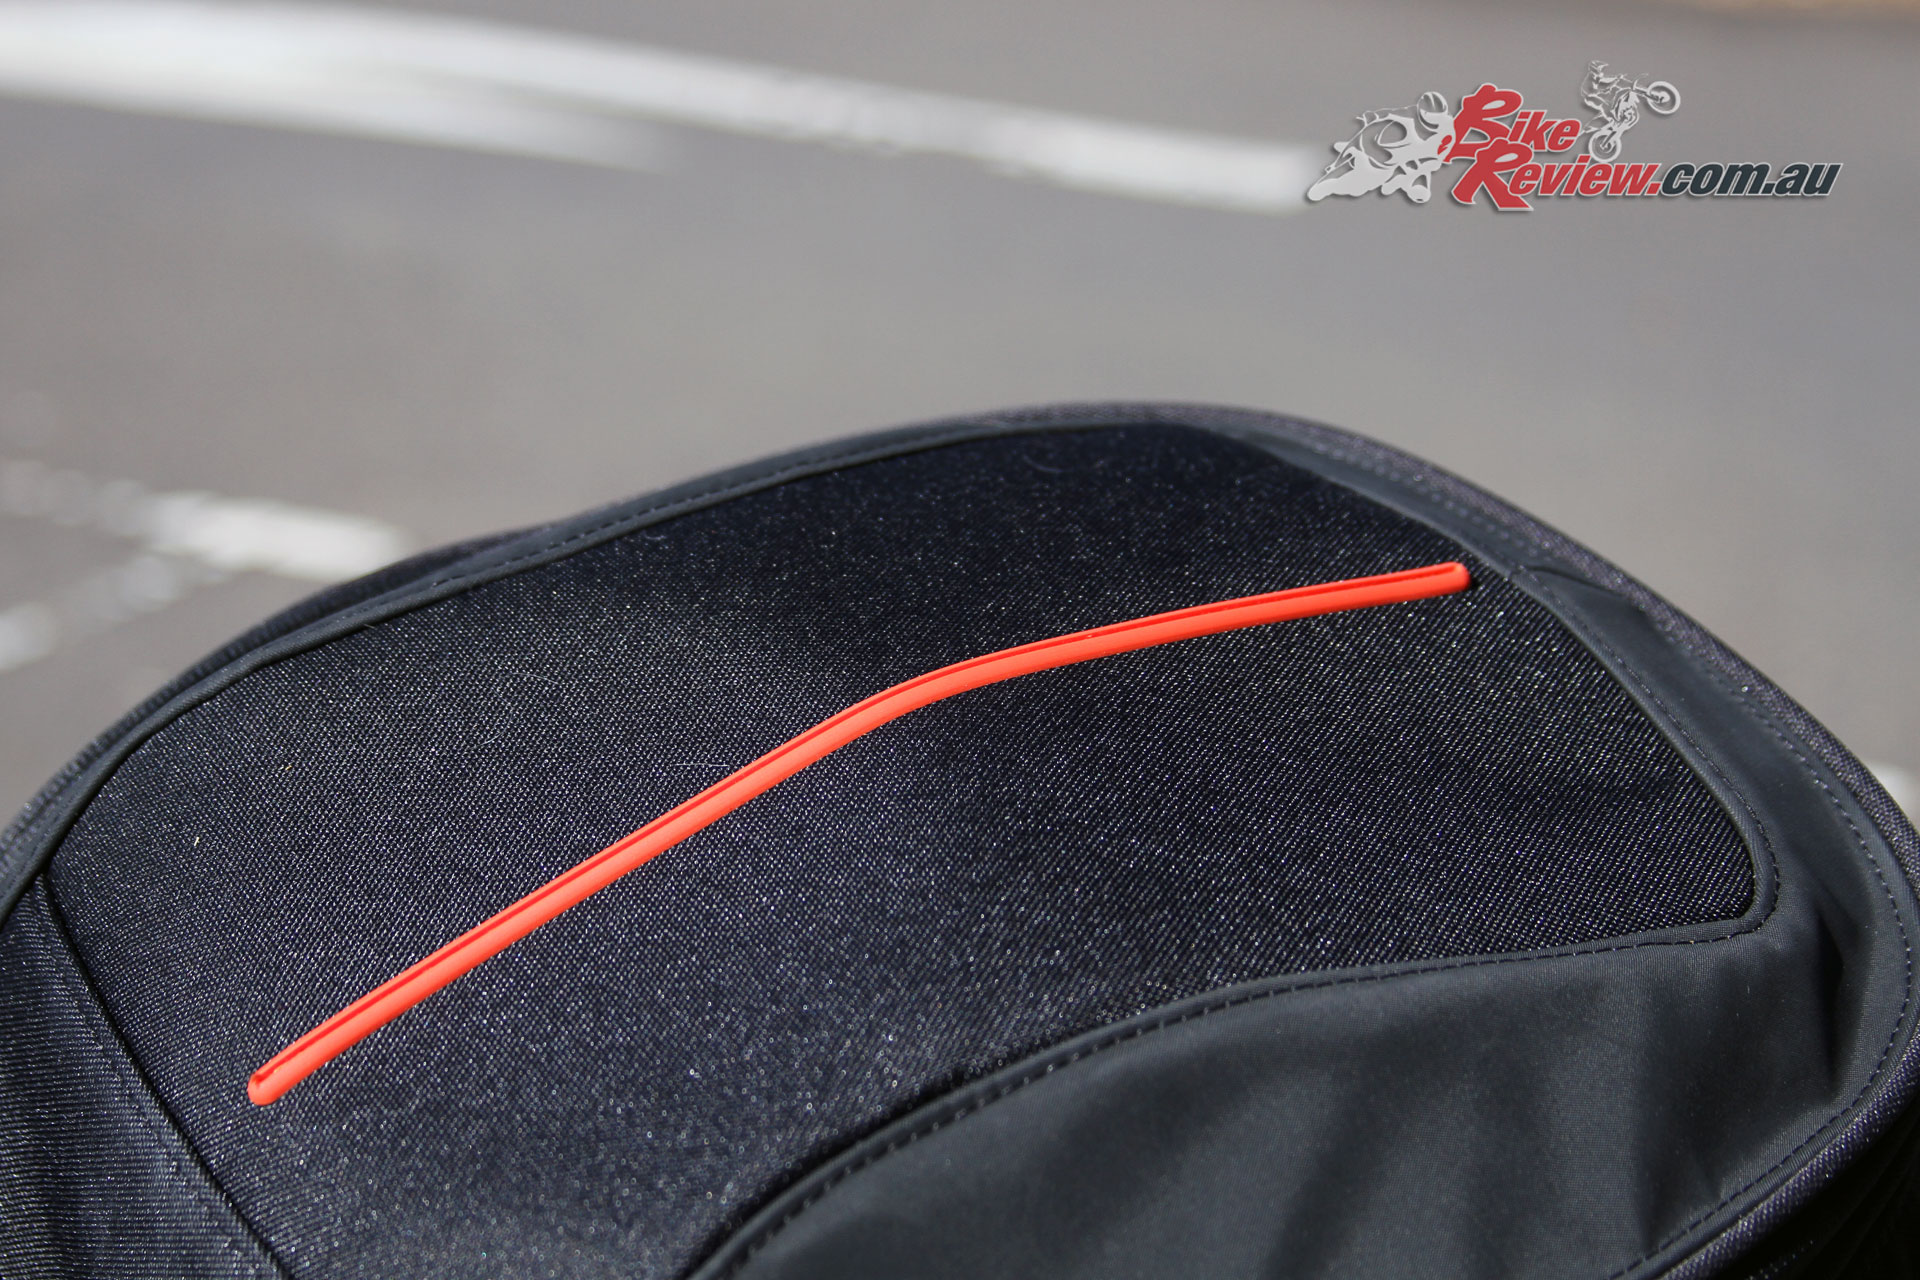 The red stripe across the top of the bike adds a touch of style, while reflective piping helps visibility